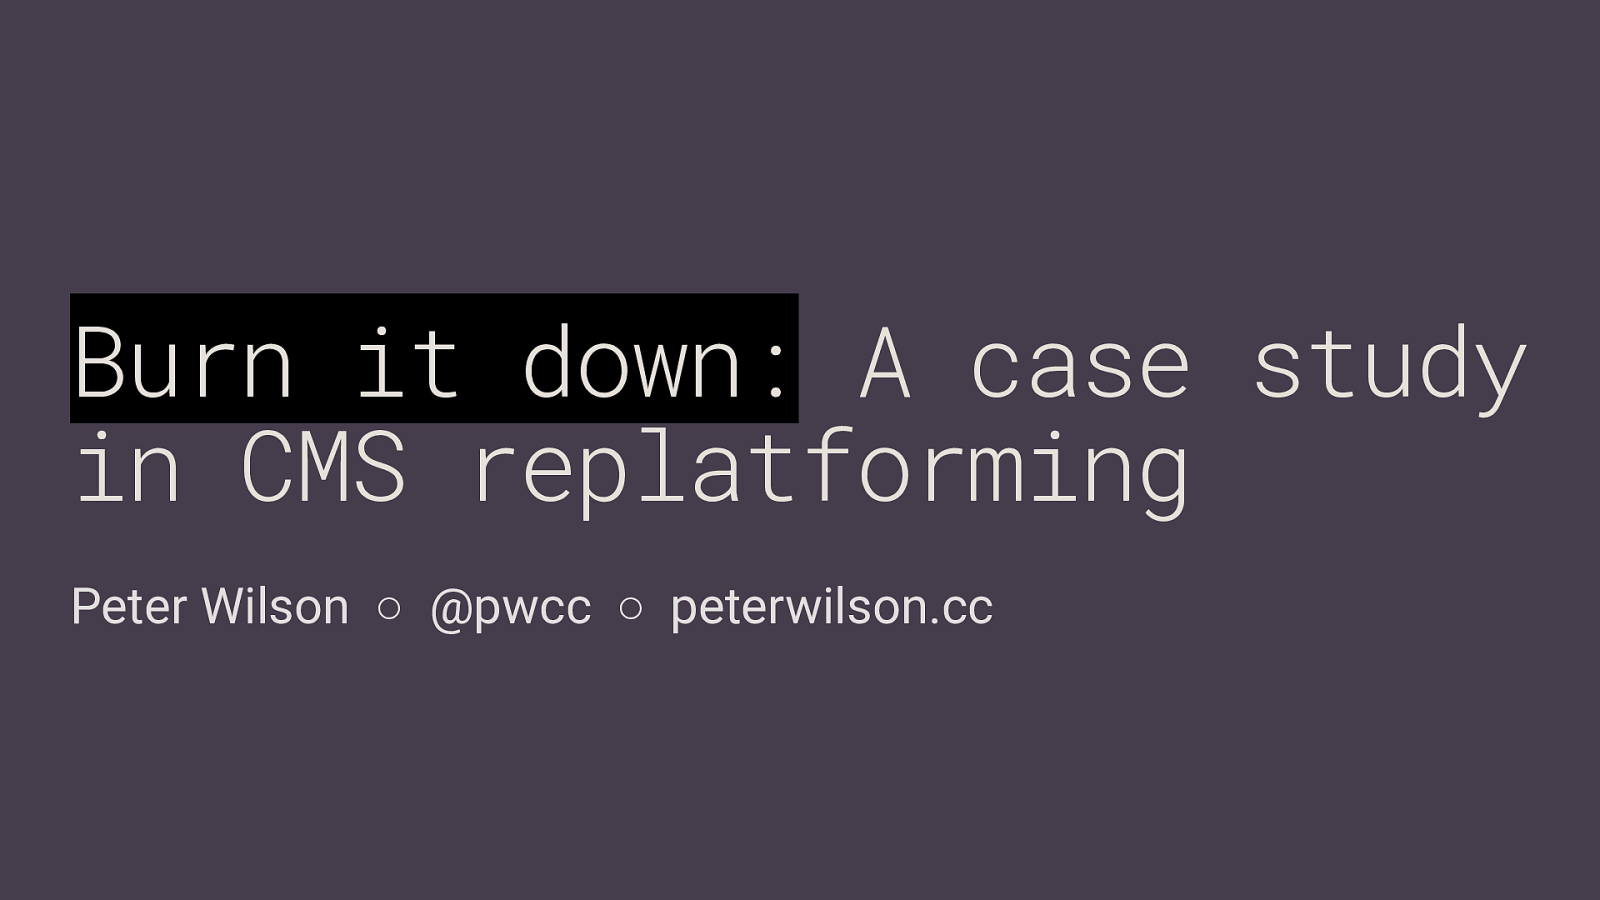 Burn it down: A case study in CMS replatforming